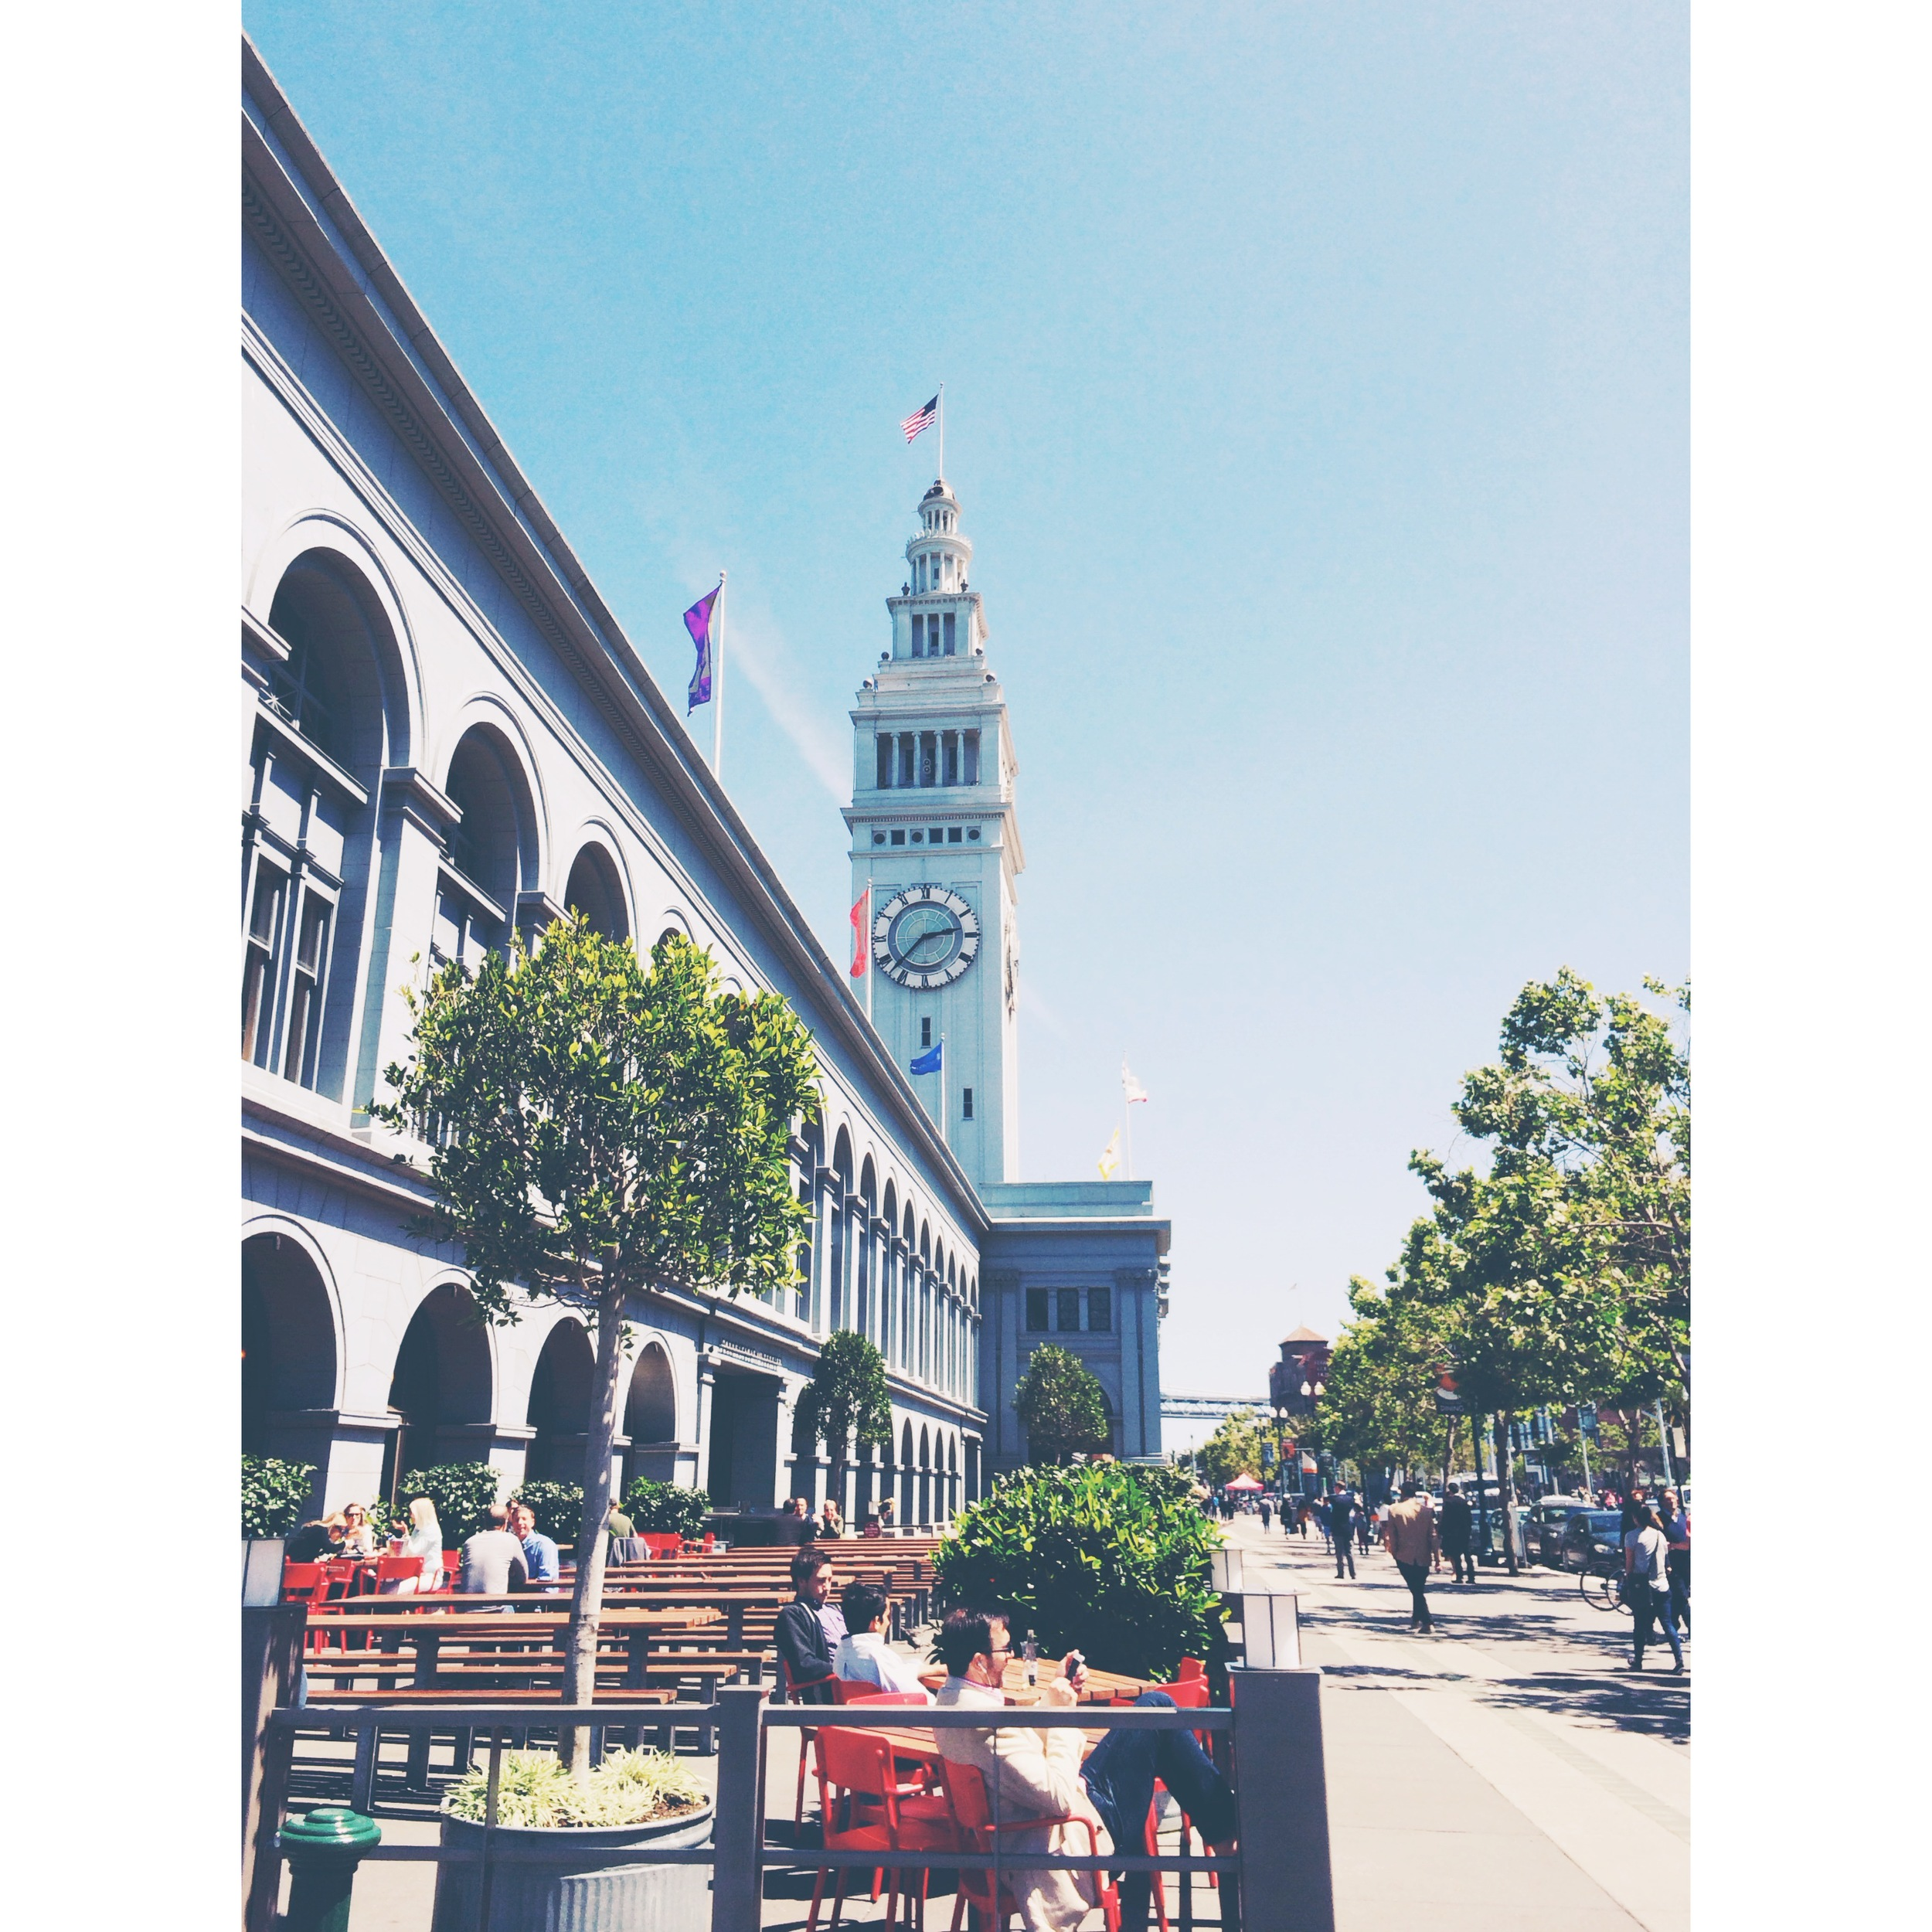 The  Ferry Building , built in 1898, was once the main transportation hub of the city. Today it's a bustling marketplace inhabited by some of  San Francisco's finest retailers, i ncluding  Heath Ceramics ,  Cowgirl Creamery ,  Blue Bottle ,  Farm Fresh To You , and so many others!